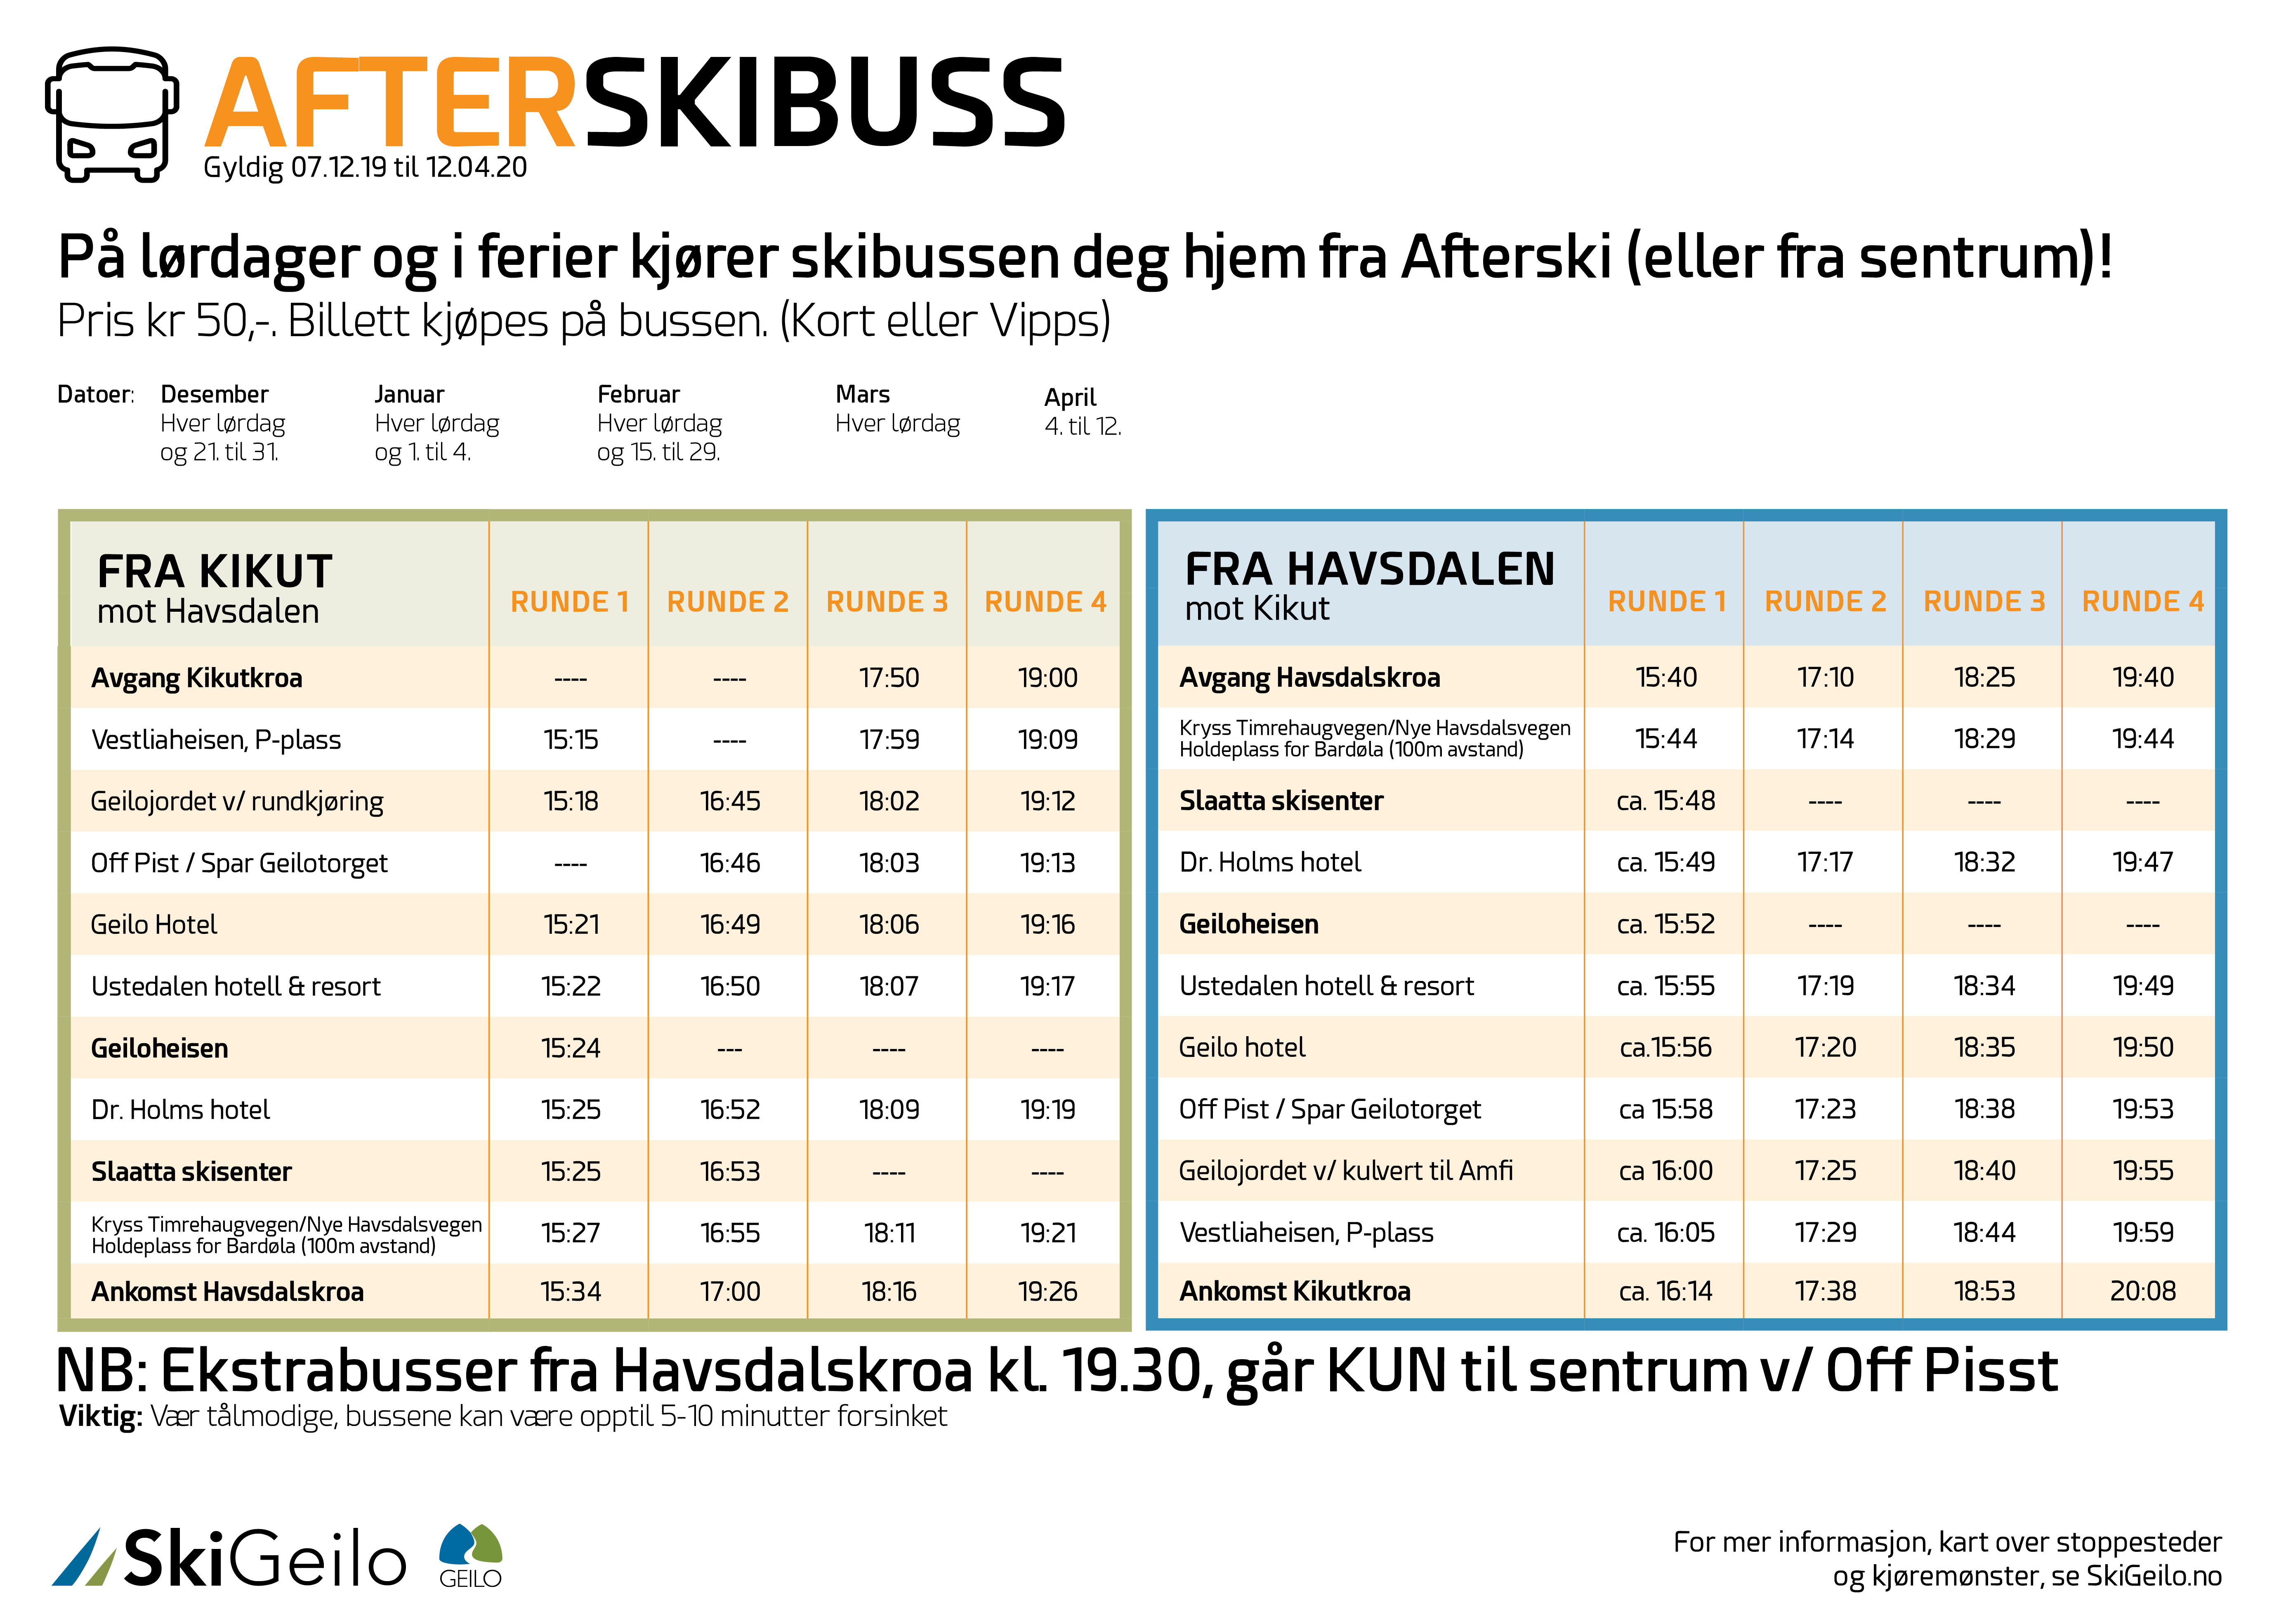 Afterskibussen 2019/20